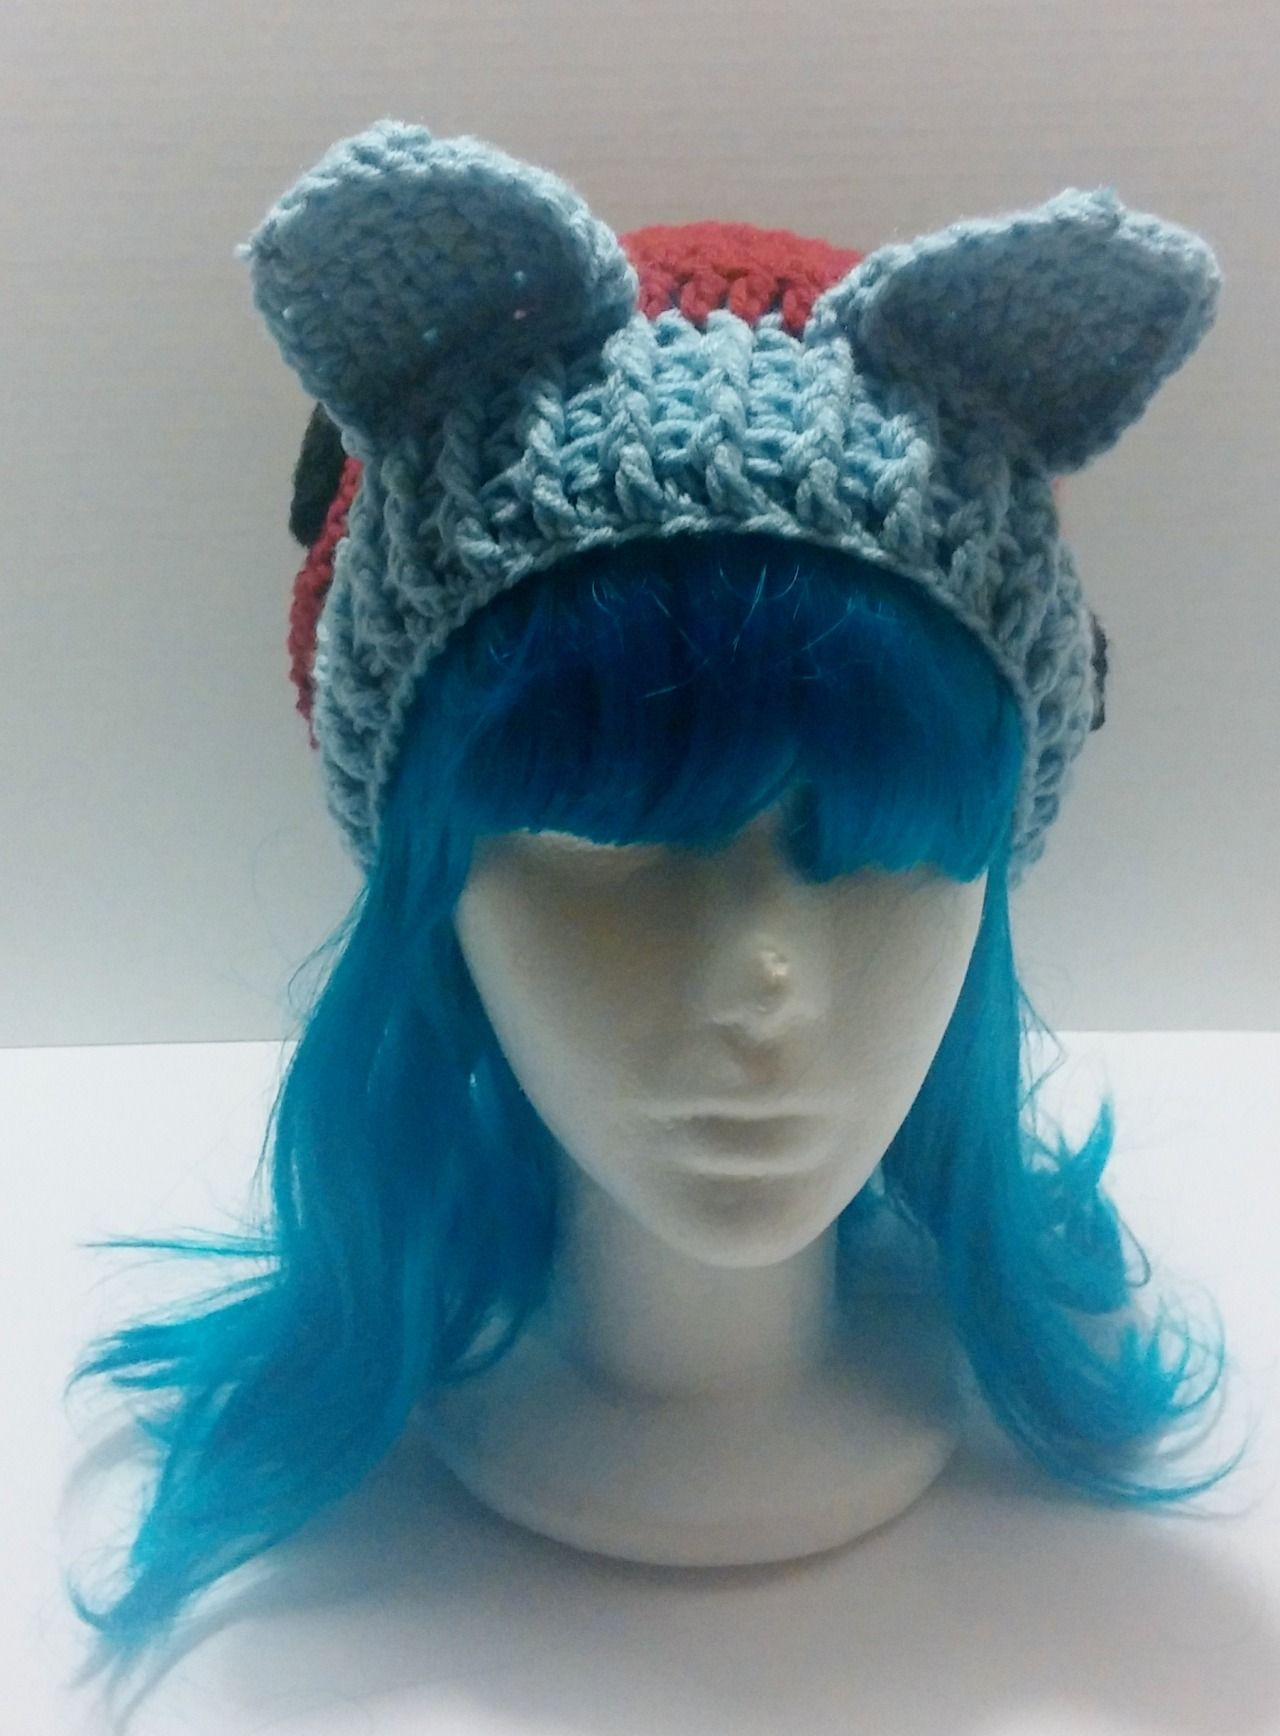 Catbug Beanie From Fandomaccessories On Etsy Knitted Cool